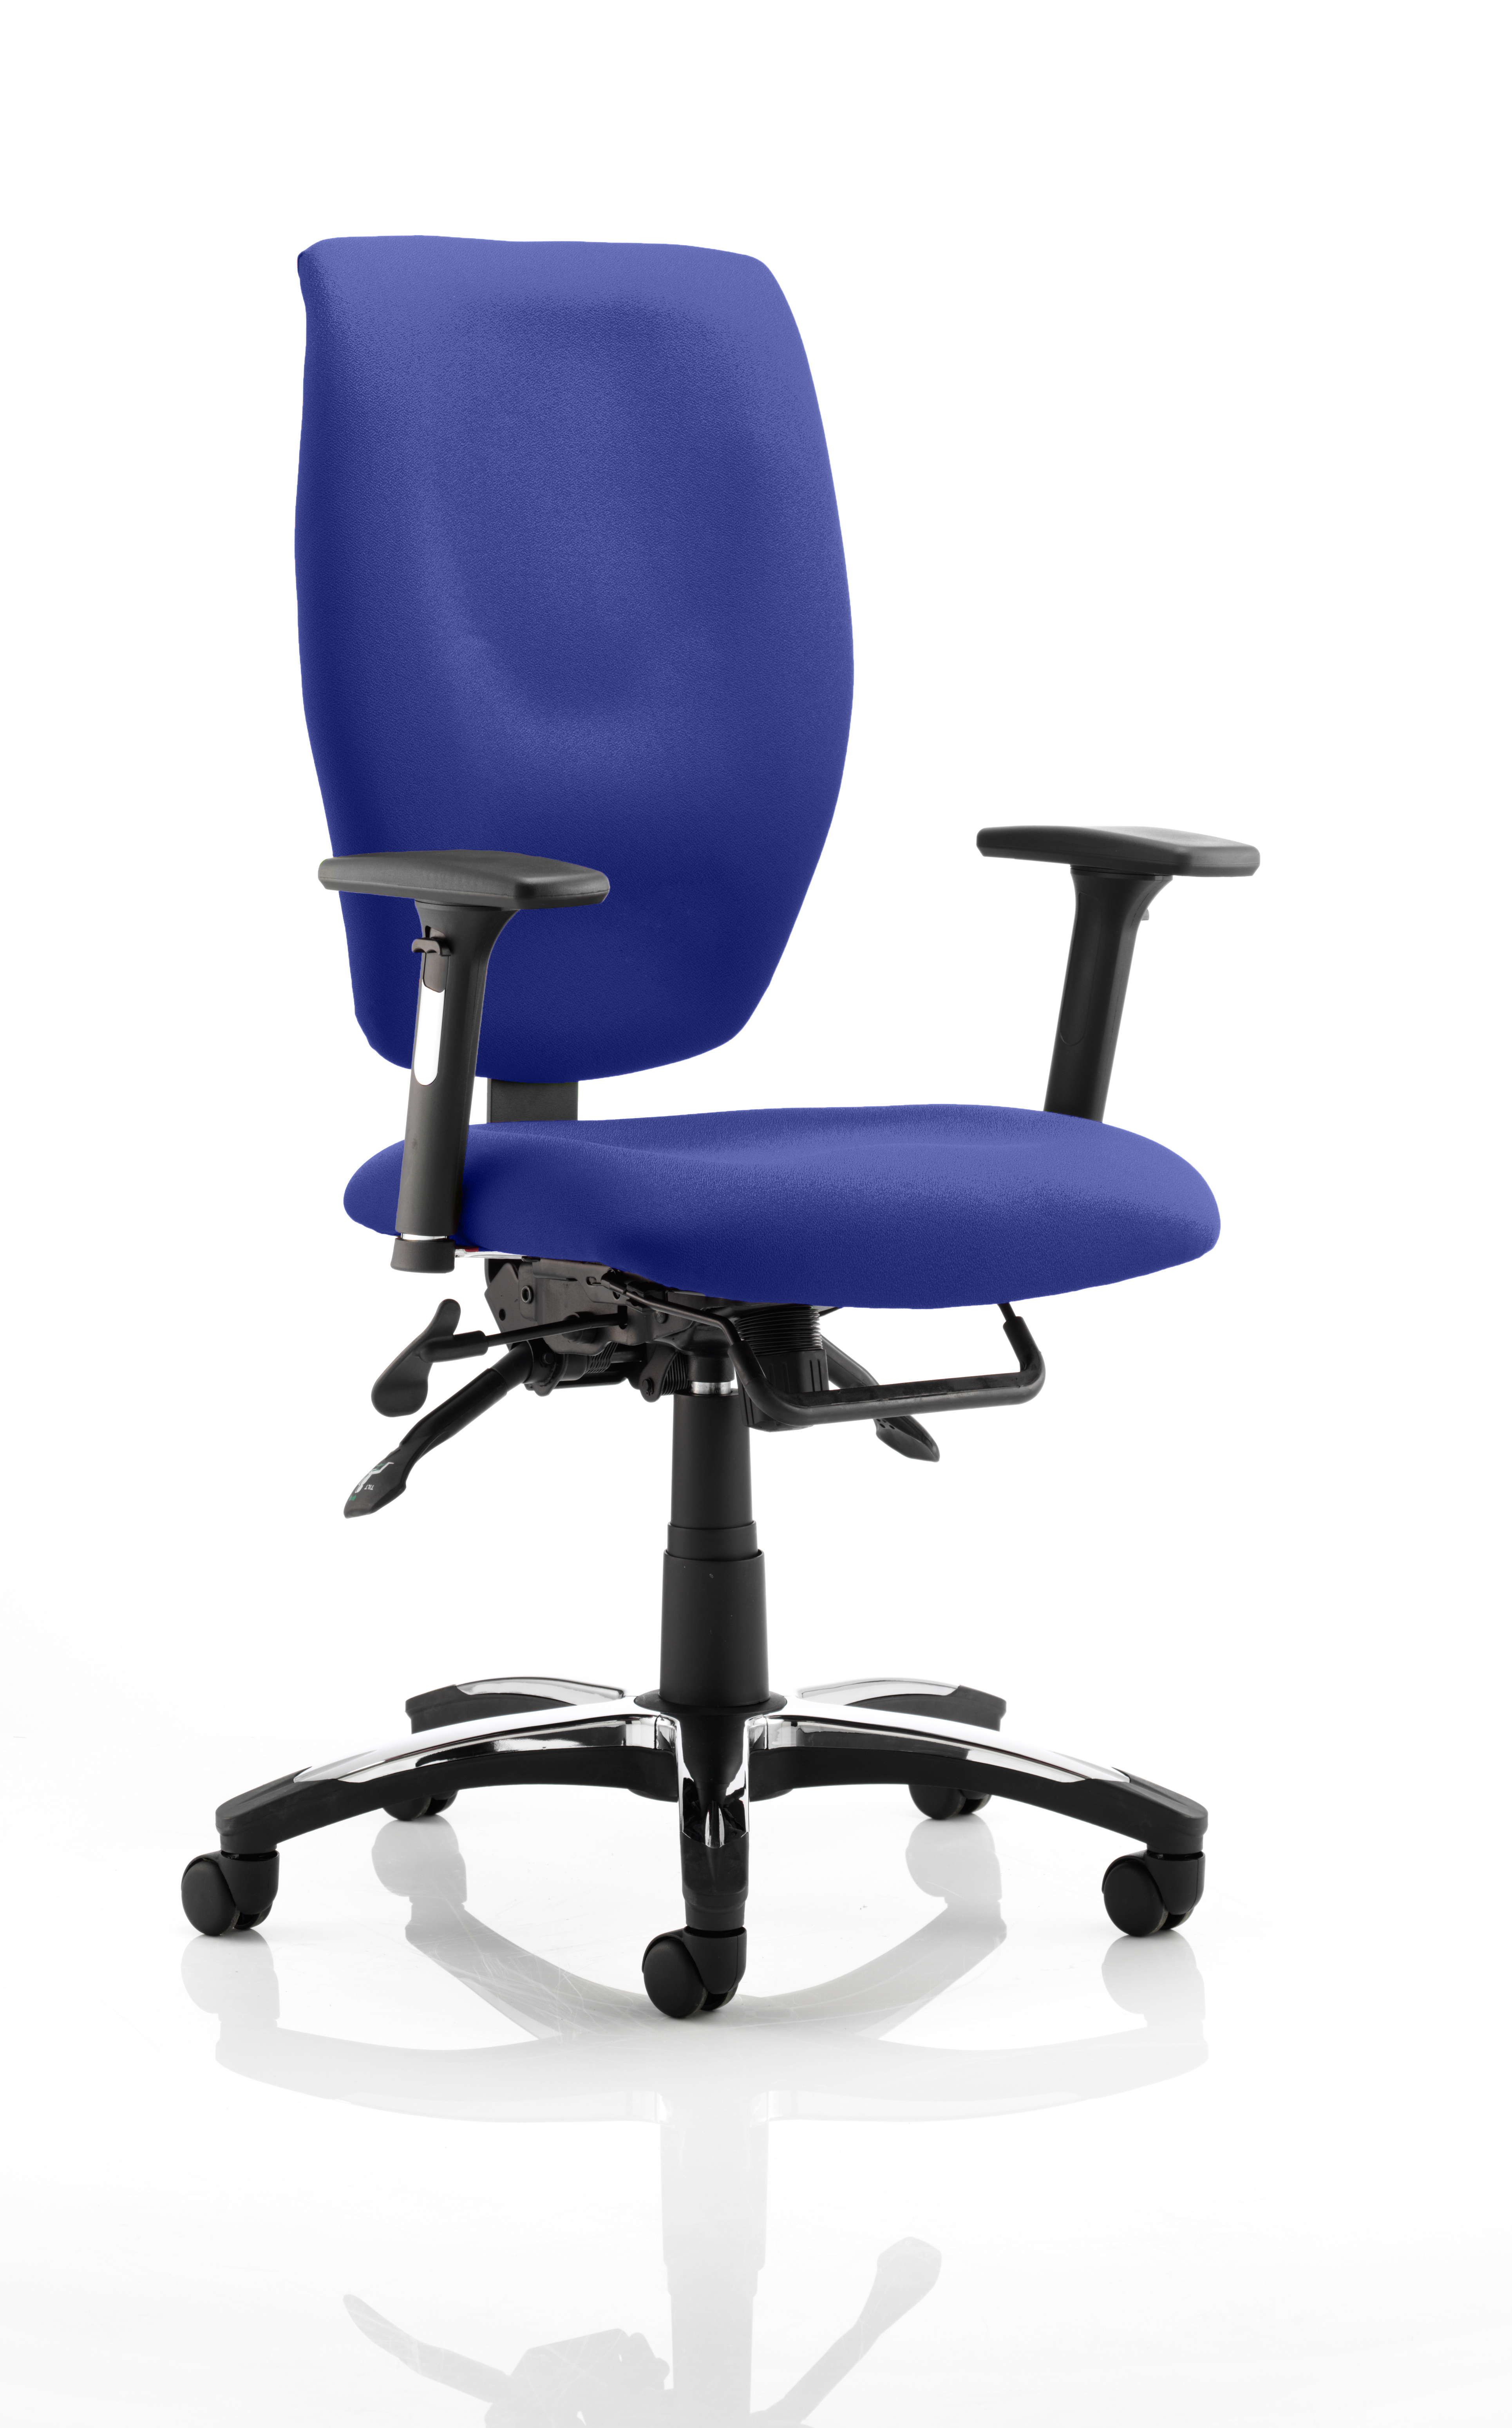 Sierra Executive Chair Black Fabric With Arms In Stevia Blue